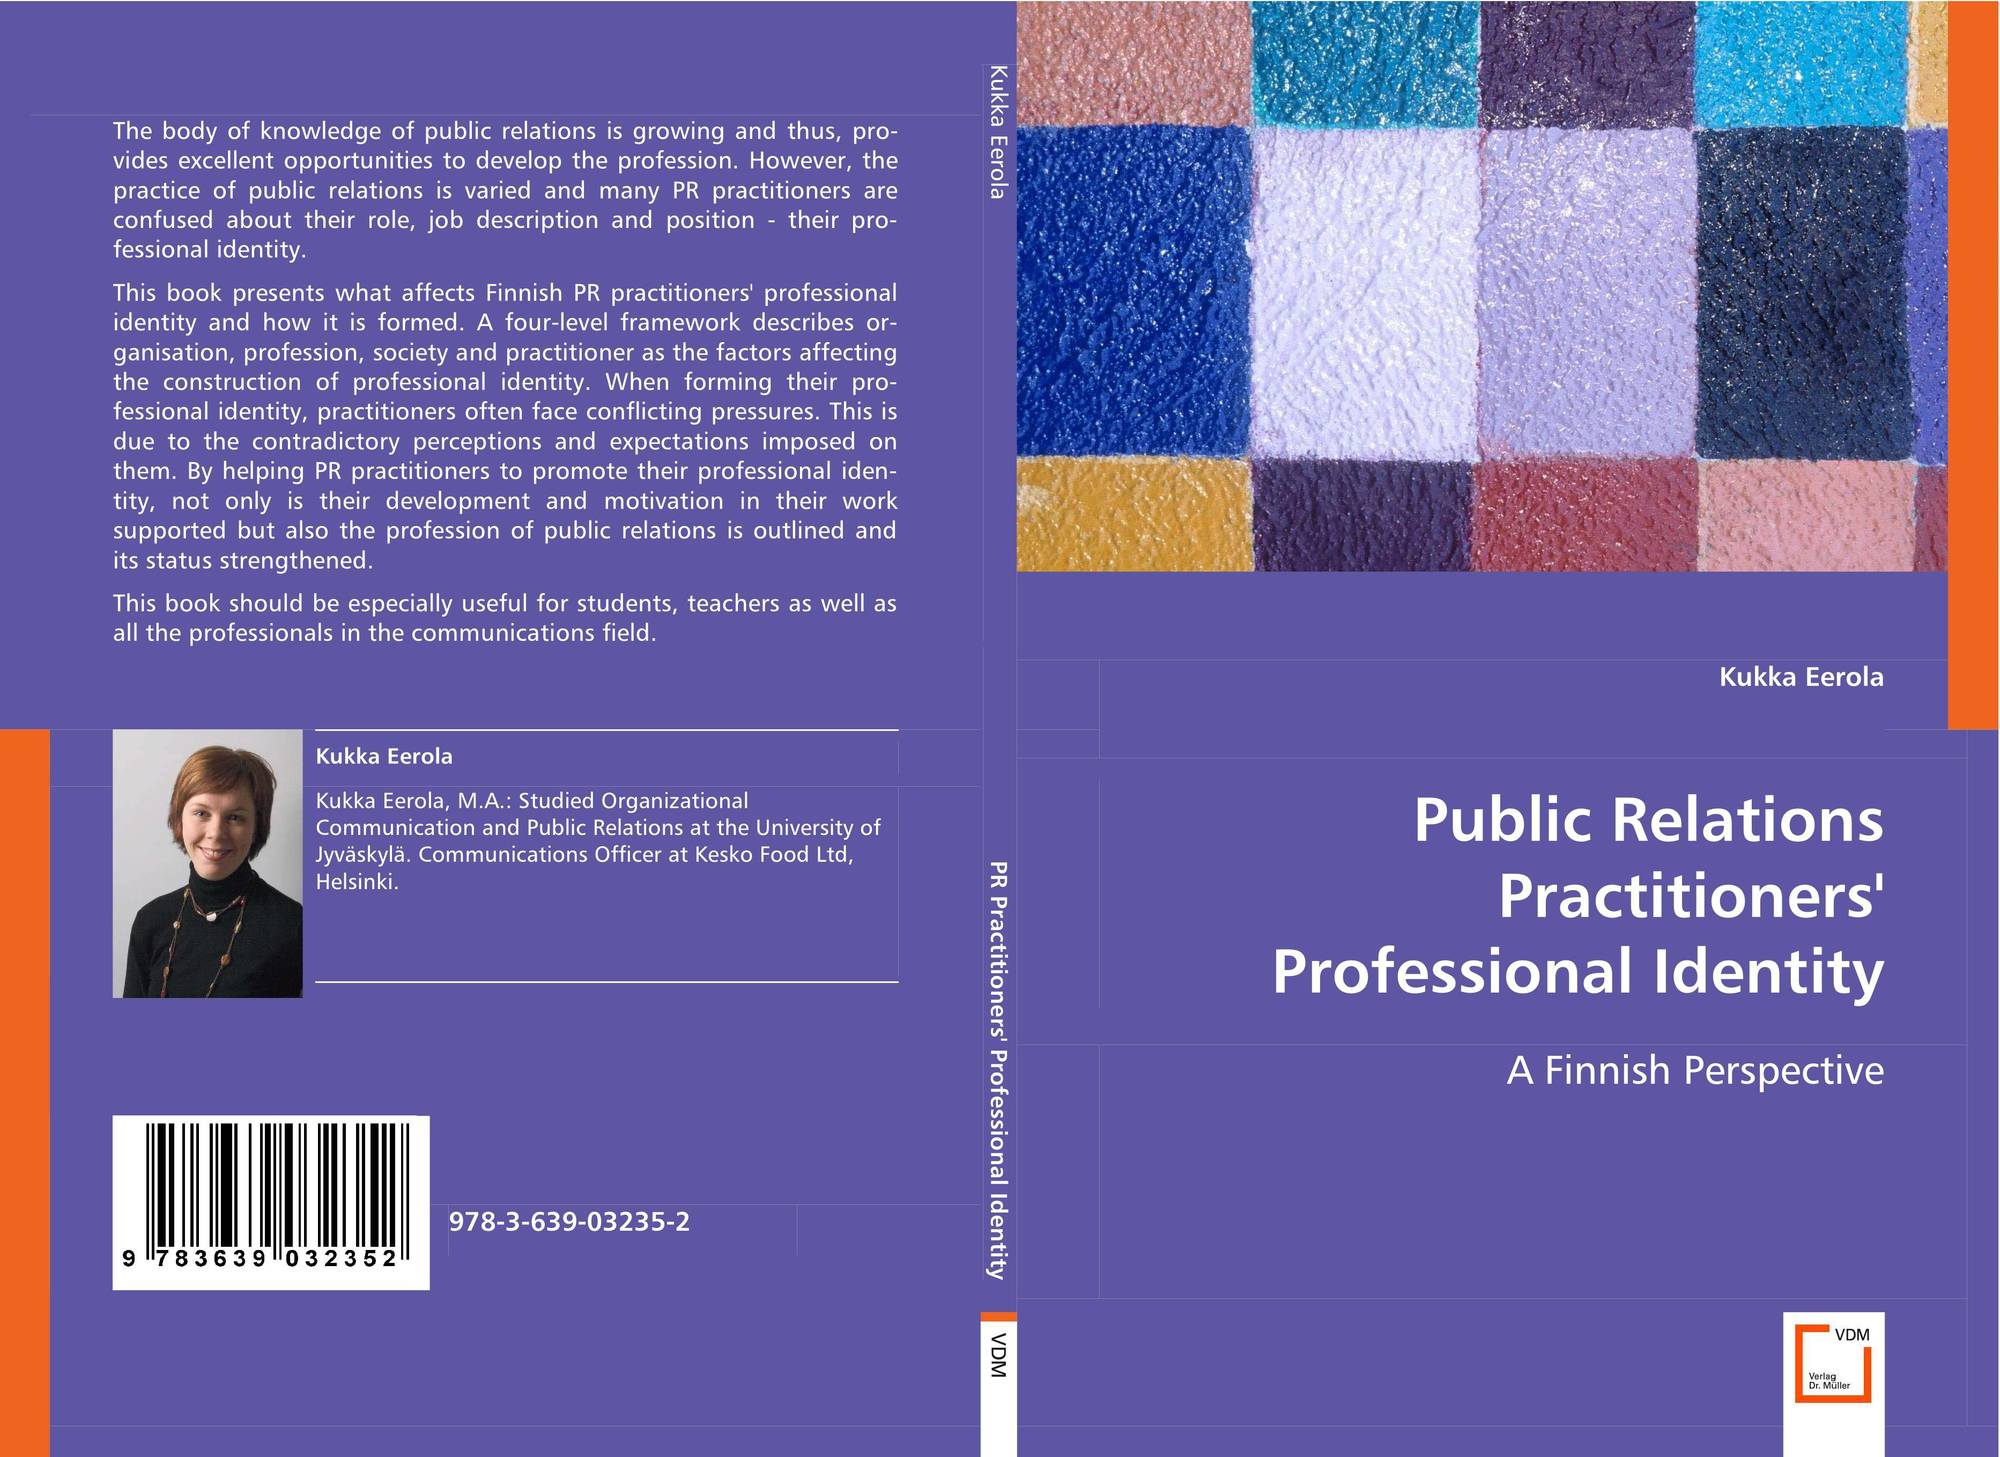 the public relations practitioner as cultural Therefore, public relations professions should list out one or more frameworks for public relations standards in multicultural world so that the young public relations practitioners could have a guideline when dealing with multicultural organizations as well as countries.